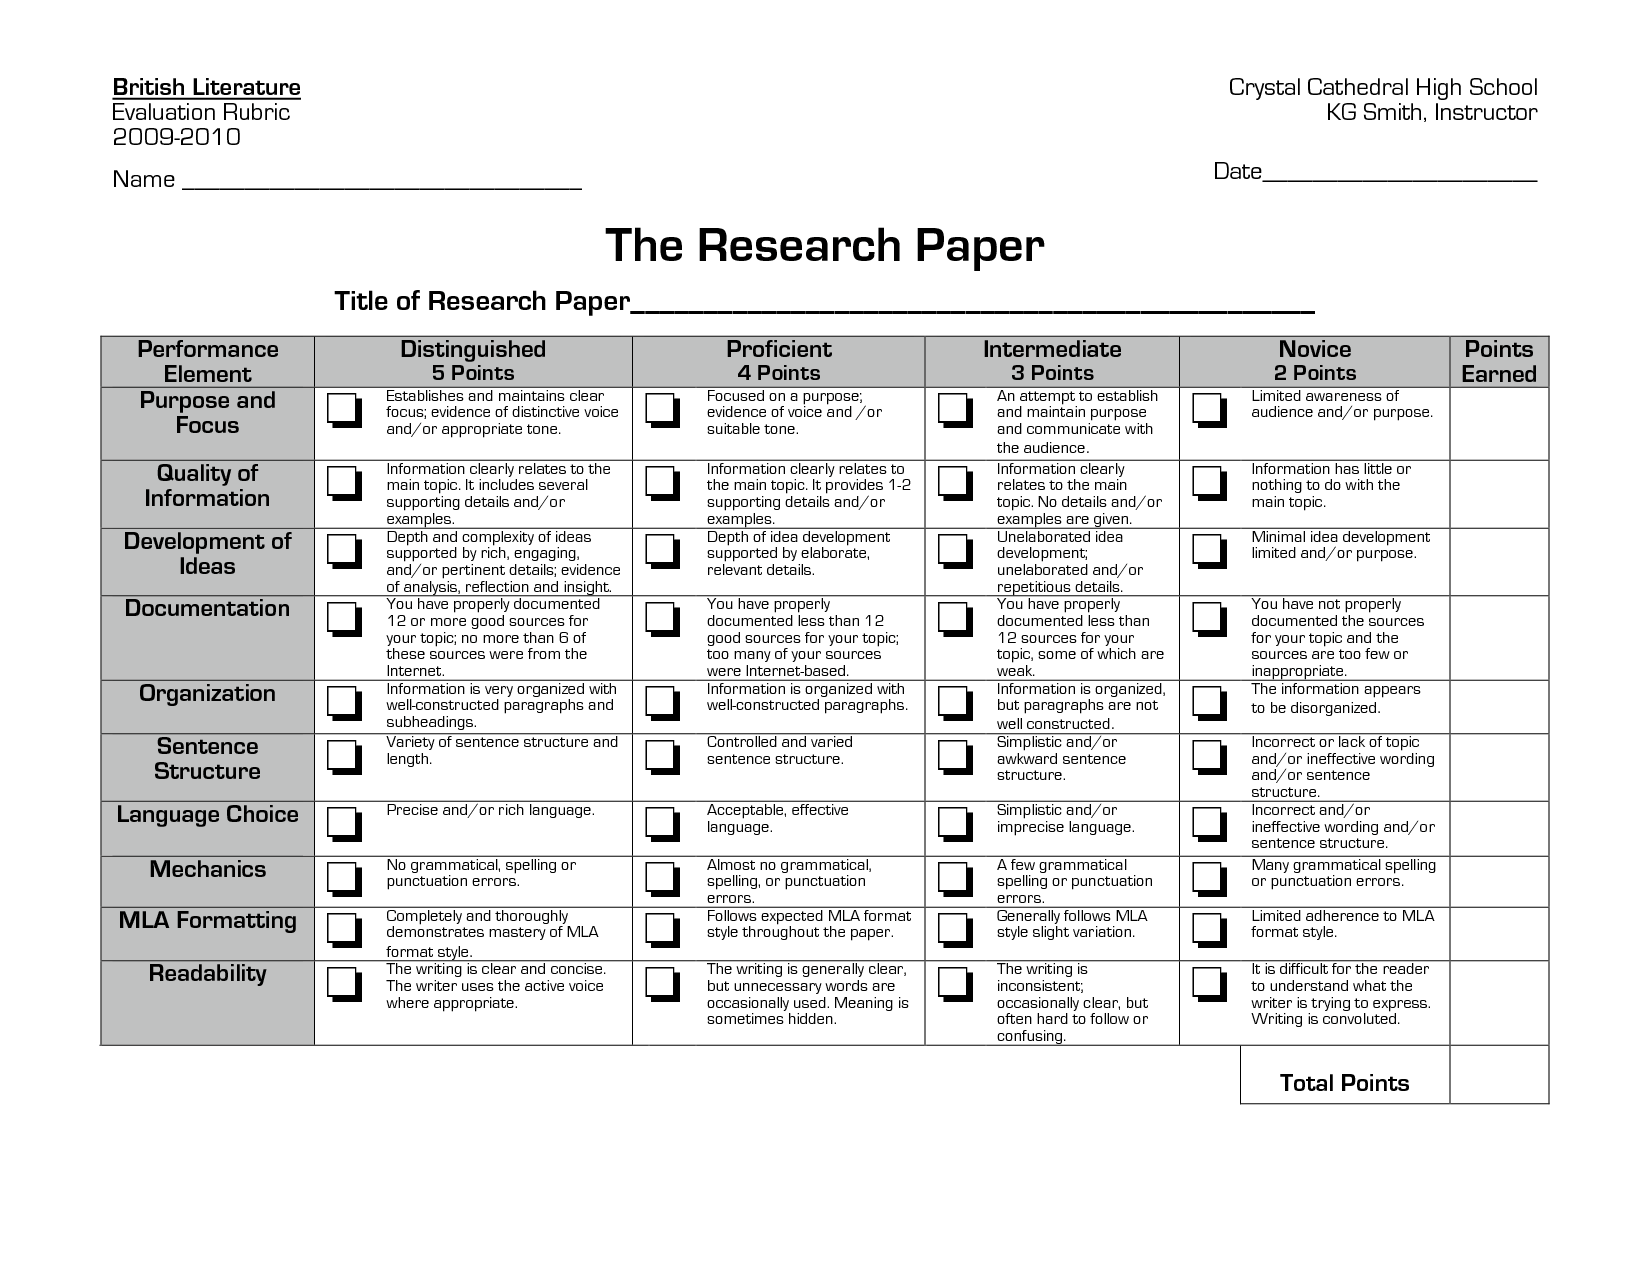 Customized writing paper rubric middle school